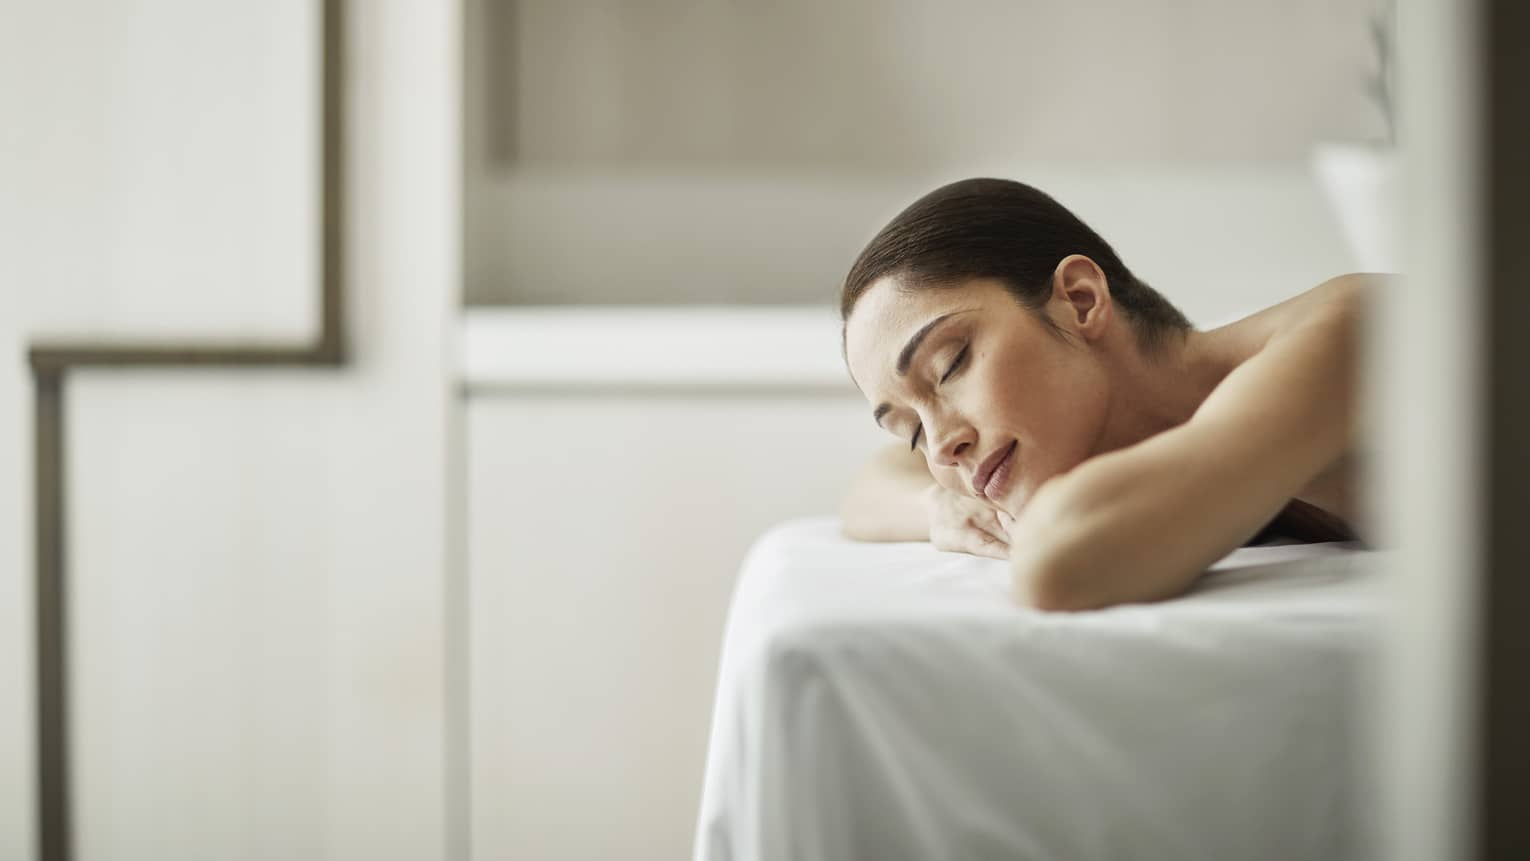 Woman smiles with eyes closed, rests head on arms as she lies on massage table with white sheet